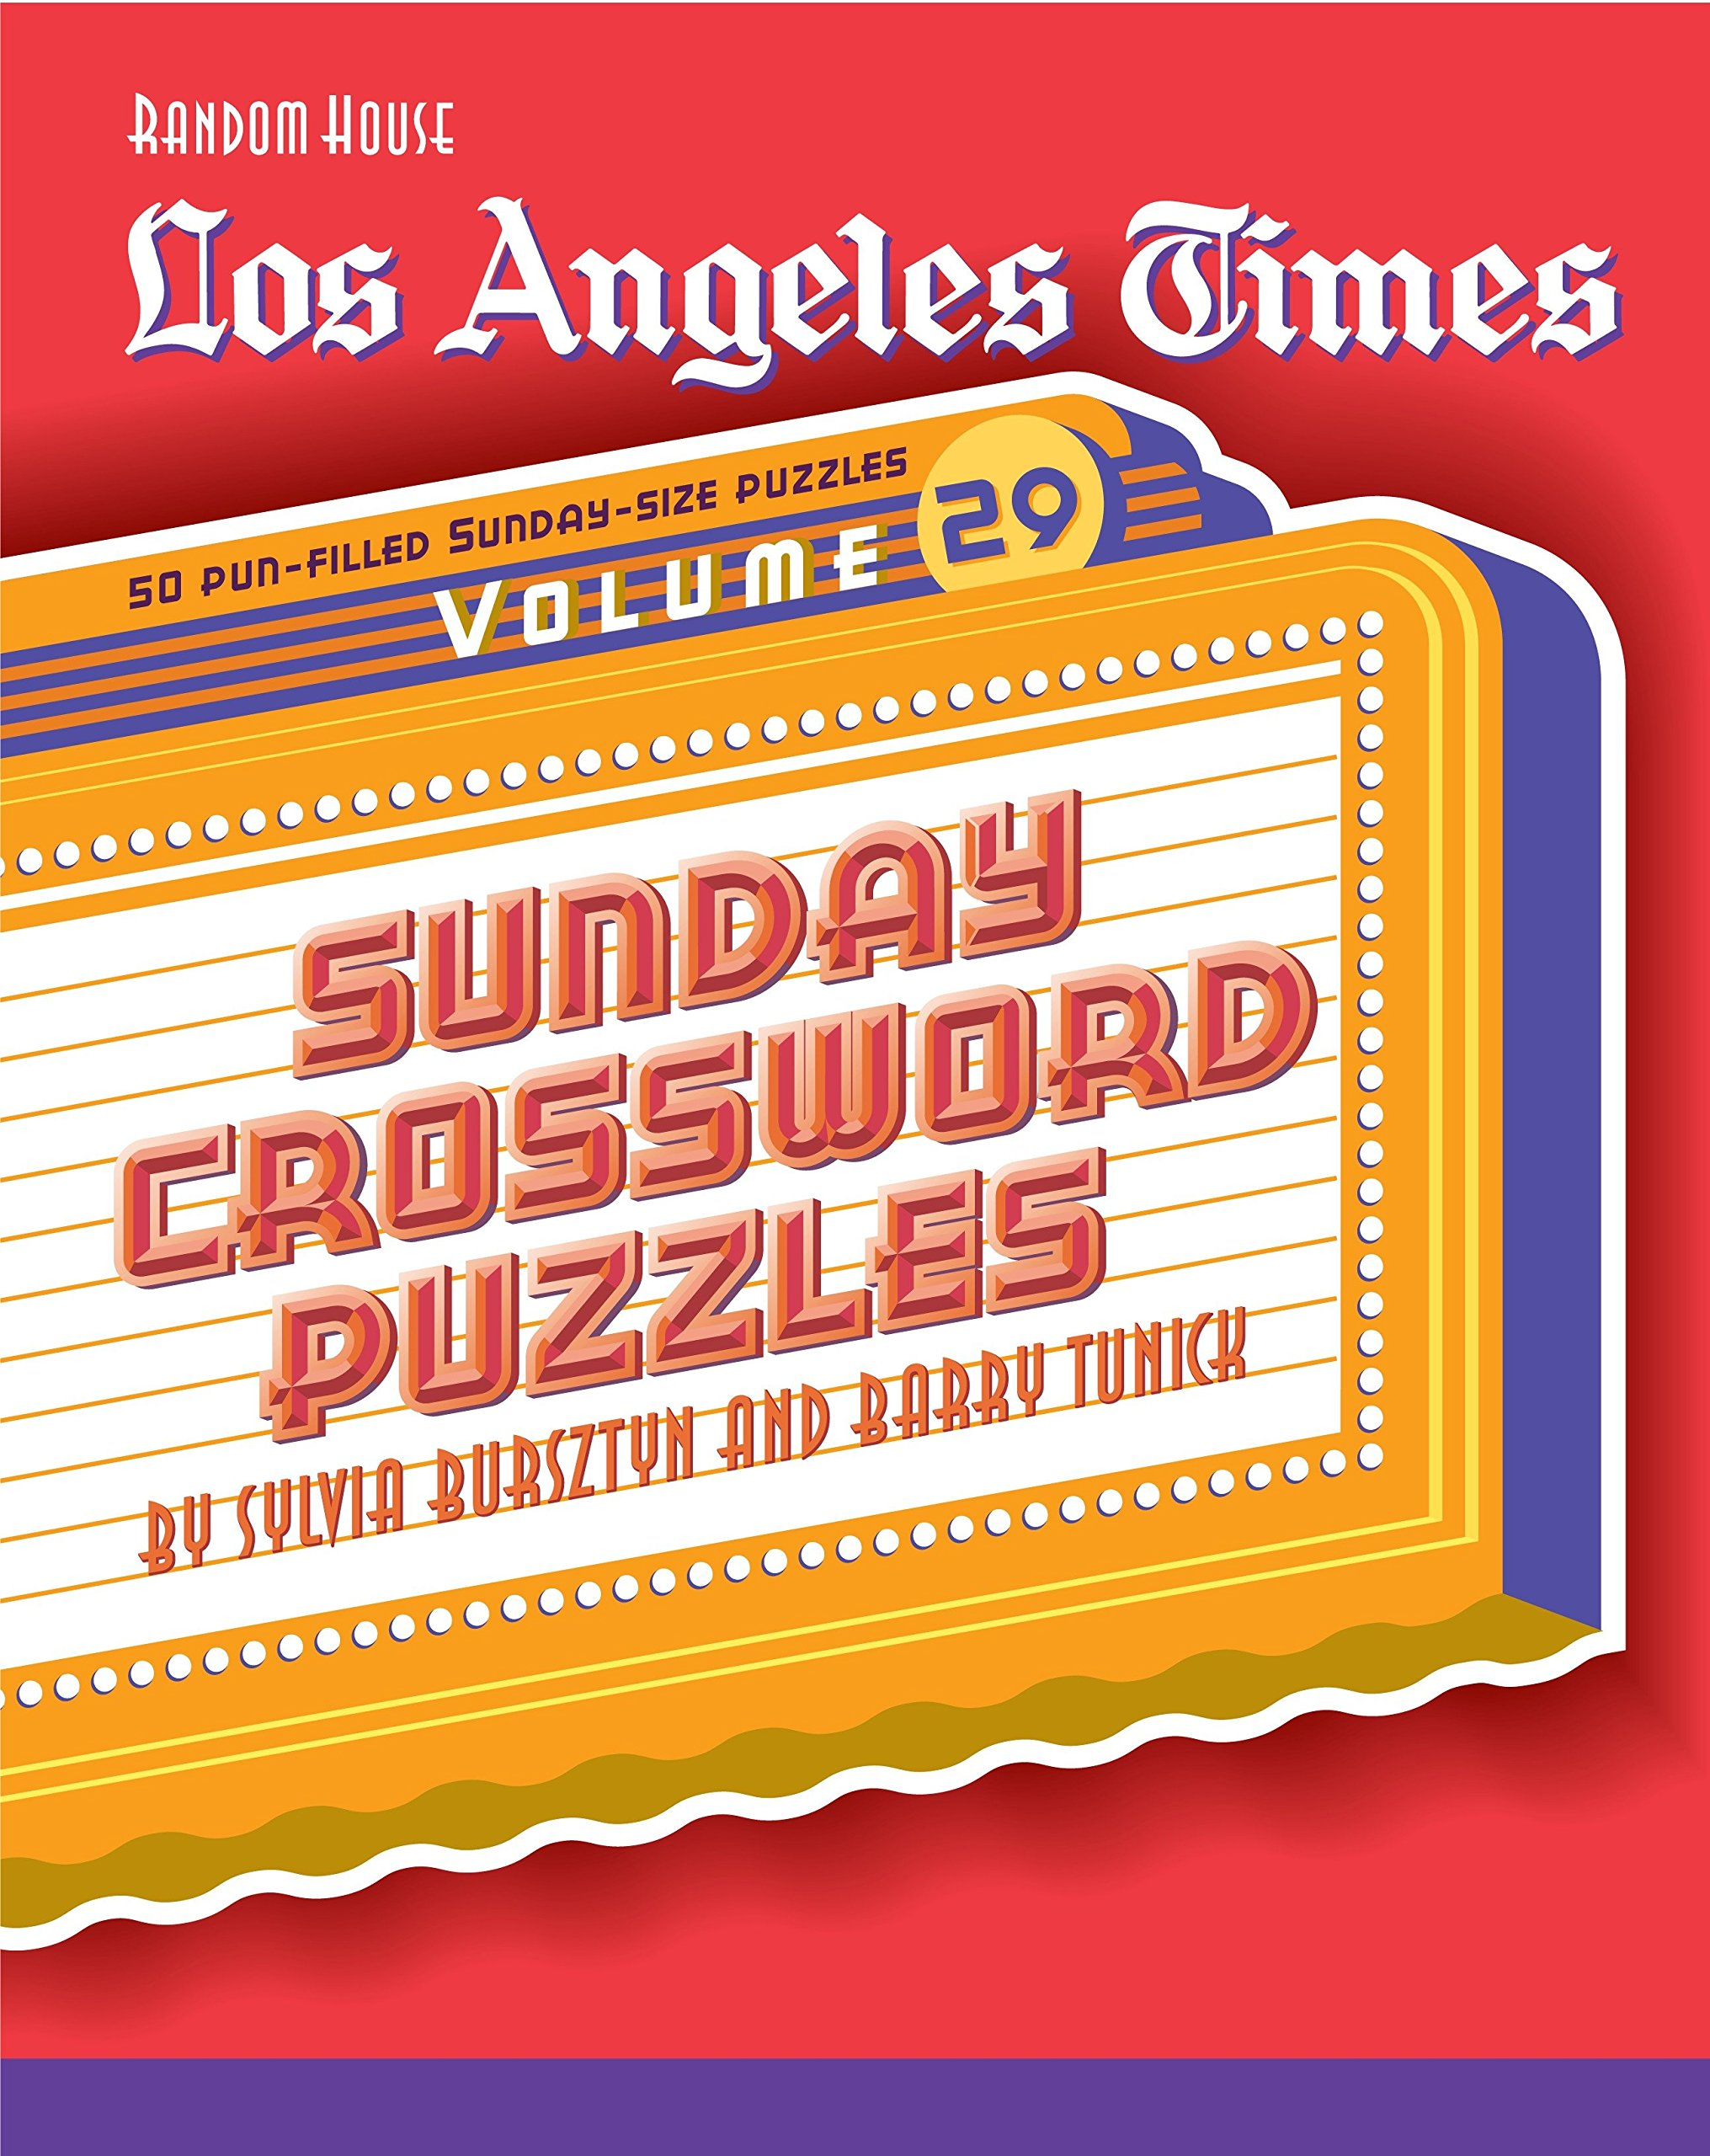 photograph regarding Printable La Times Crossword named Los Angeles Moments Sunday Crossword Puzzles, Total 29 (The